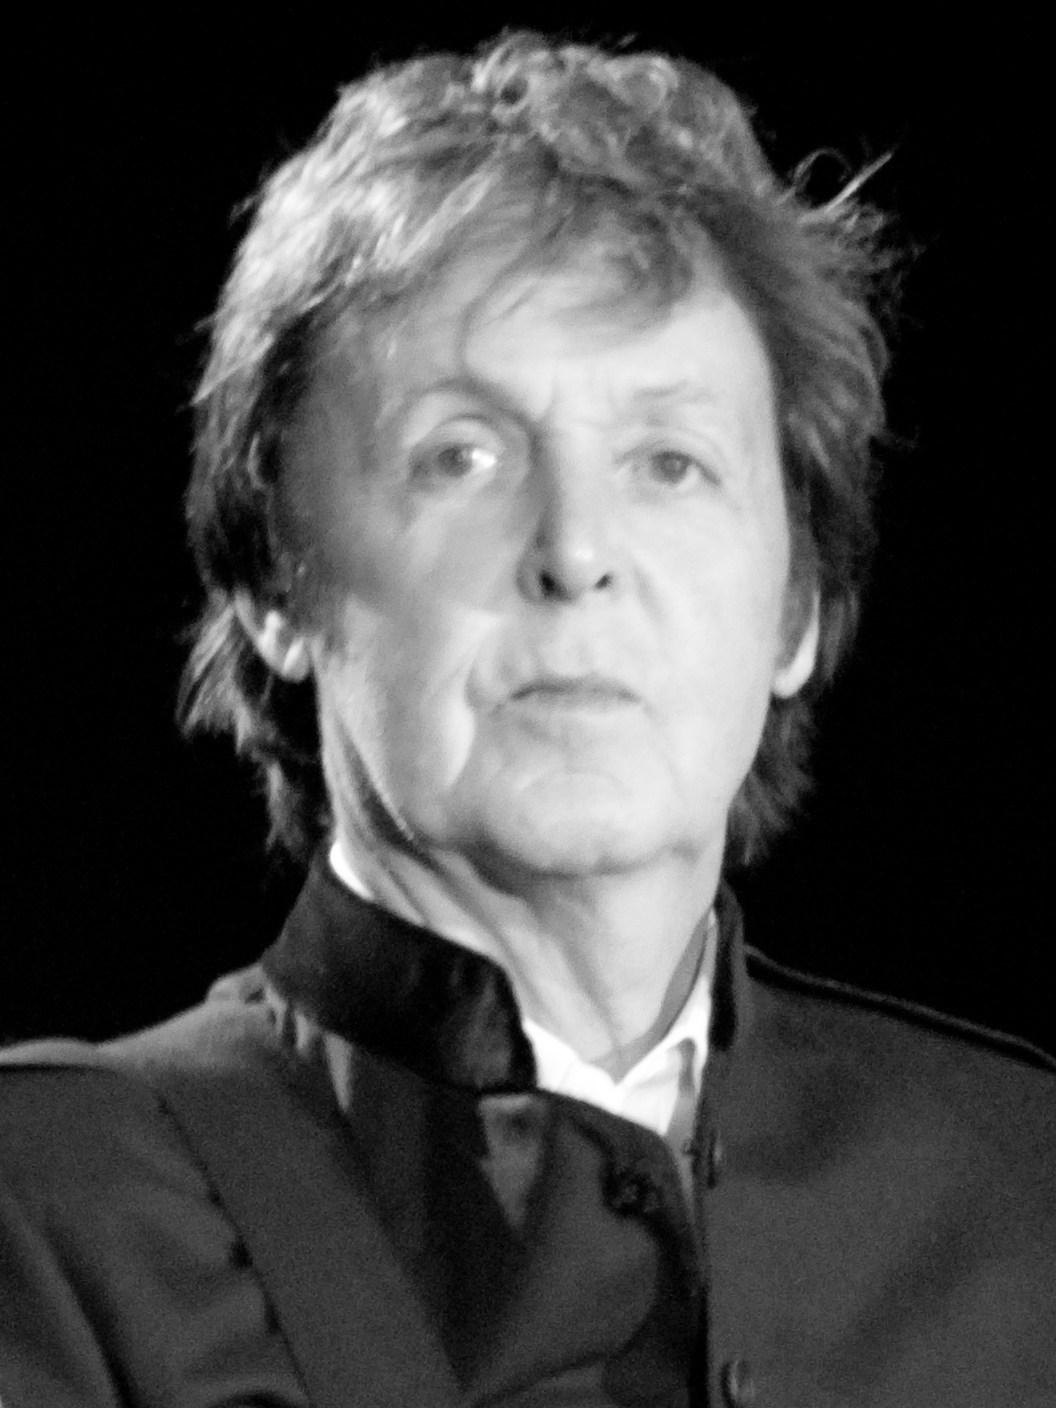 paul marcartny Former beatle paul mccartney has told a british newspaper he believes he once saw god during a psychedelic trip.